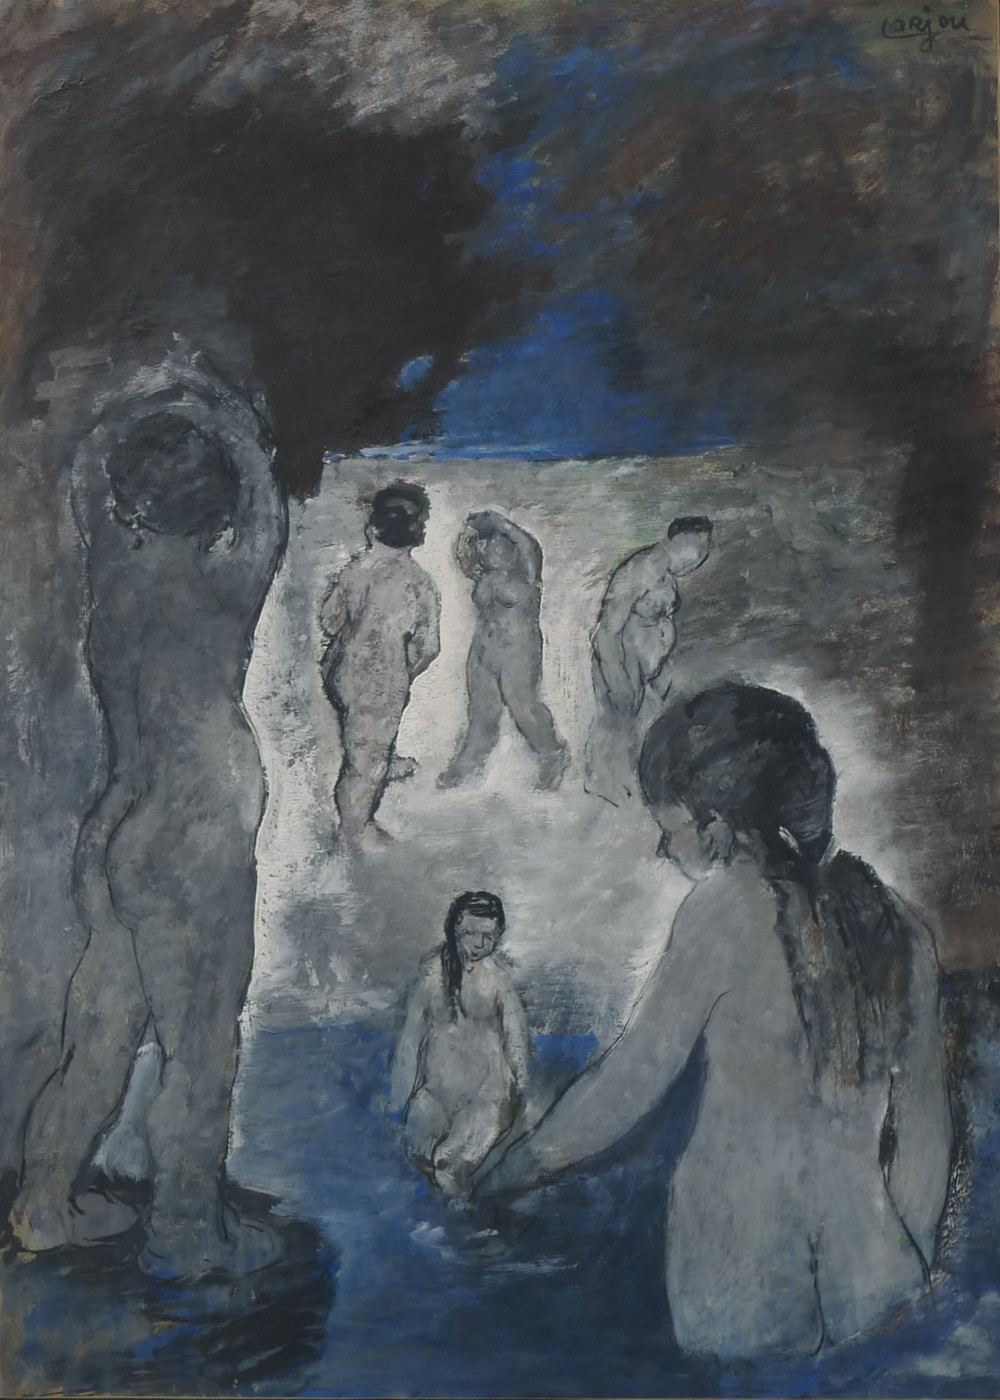 Night swim (c.1927-30)